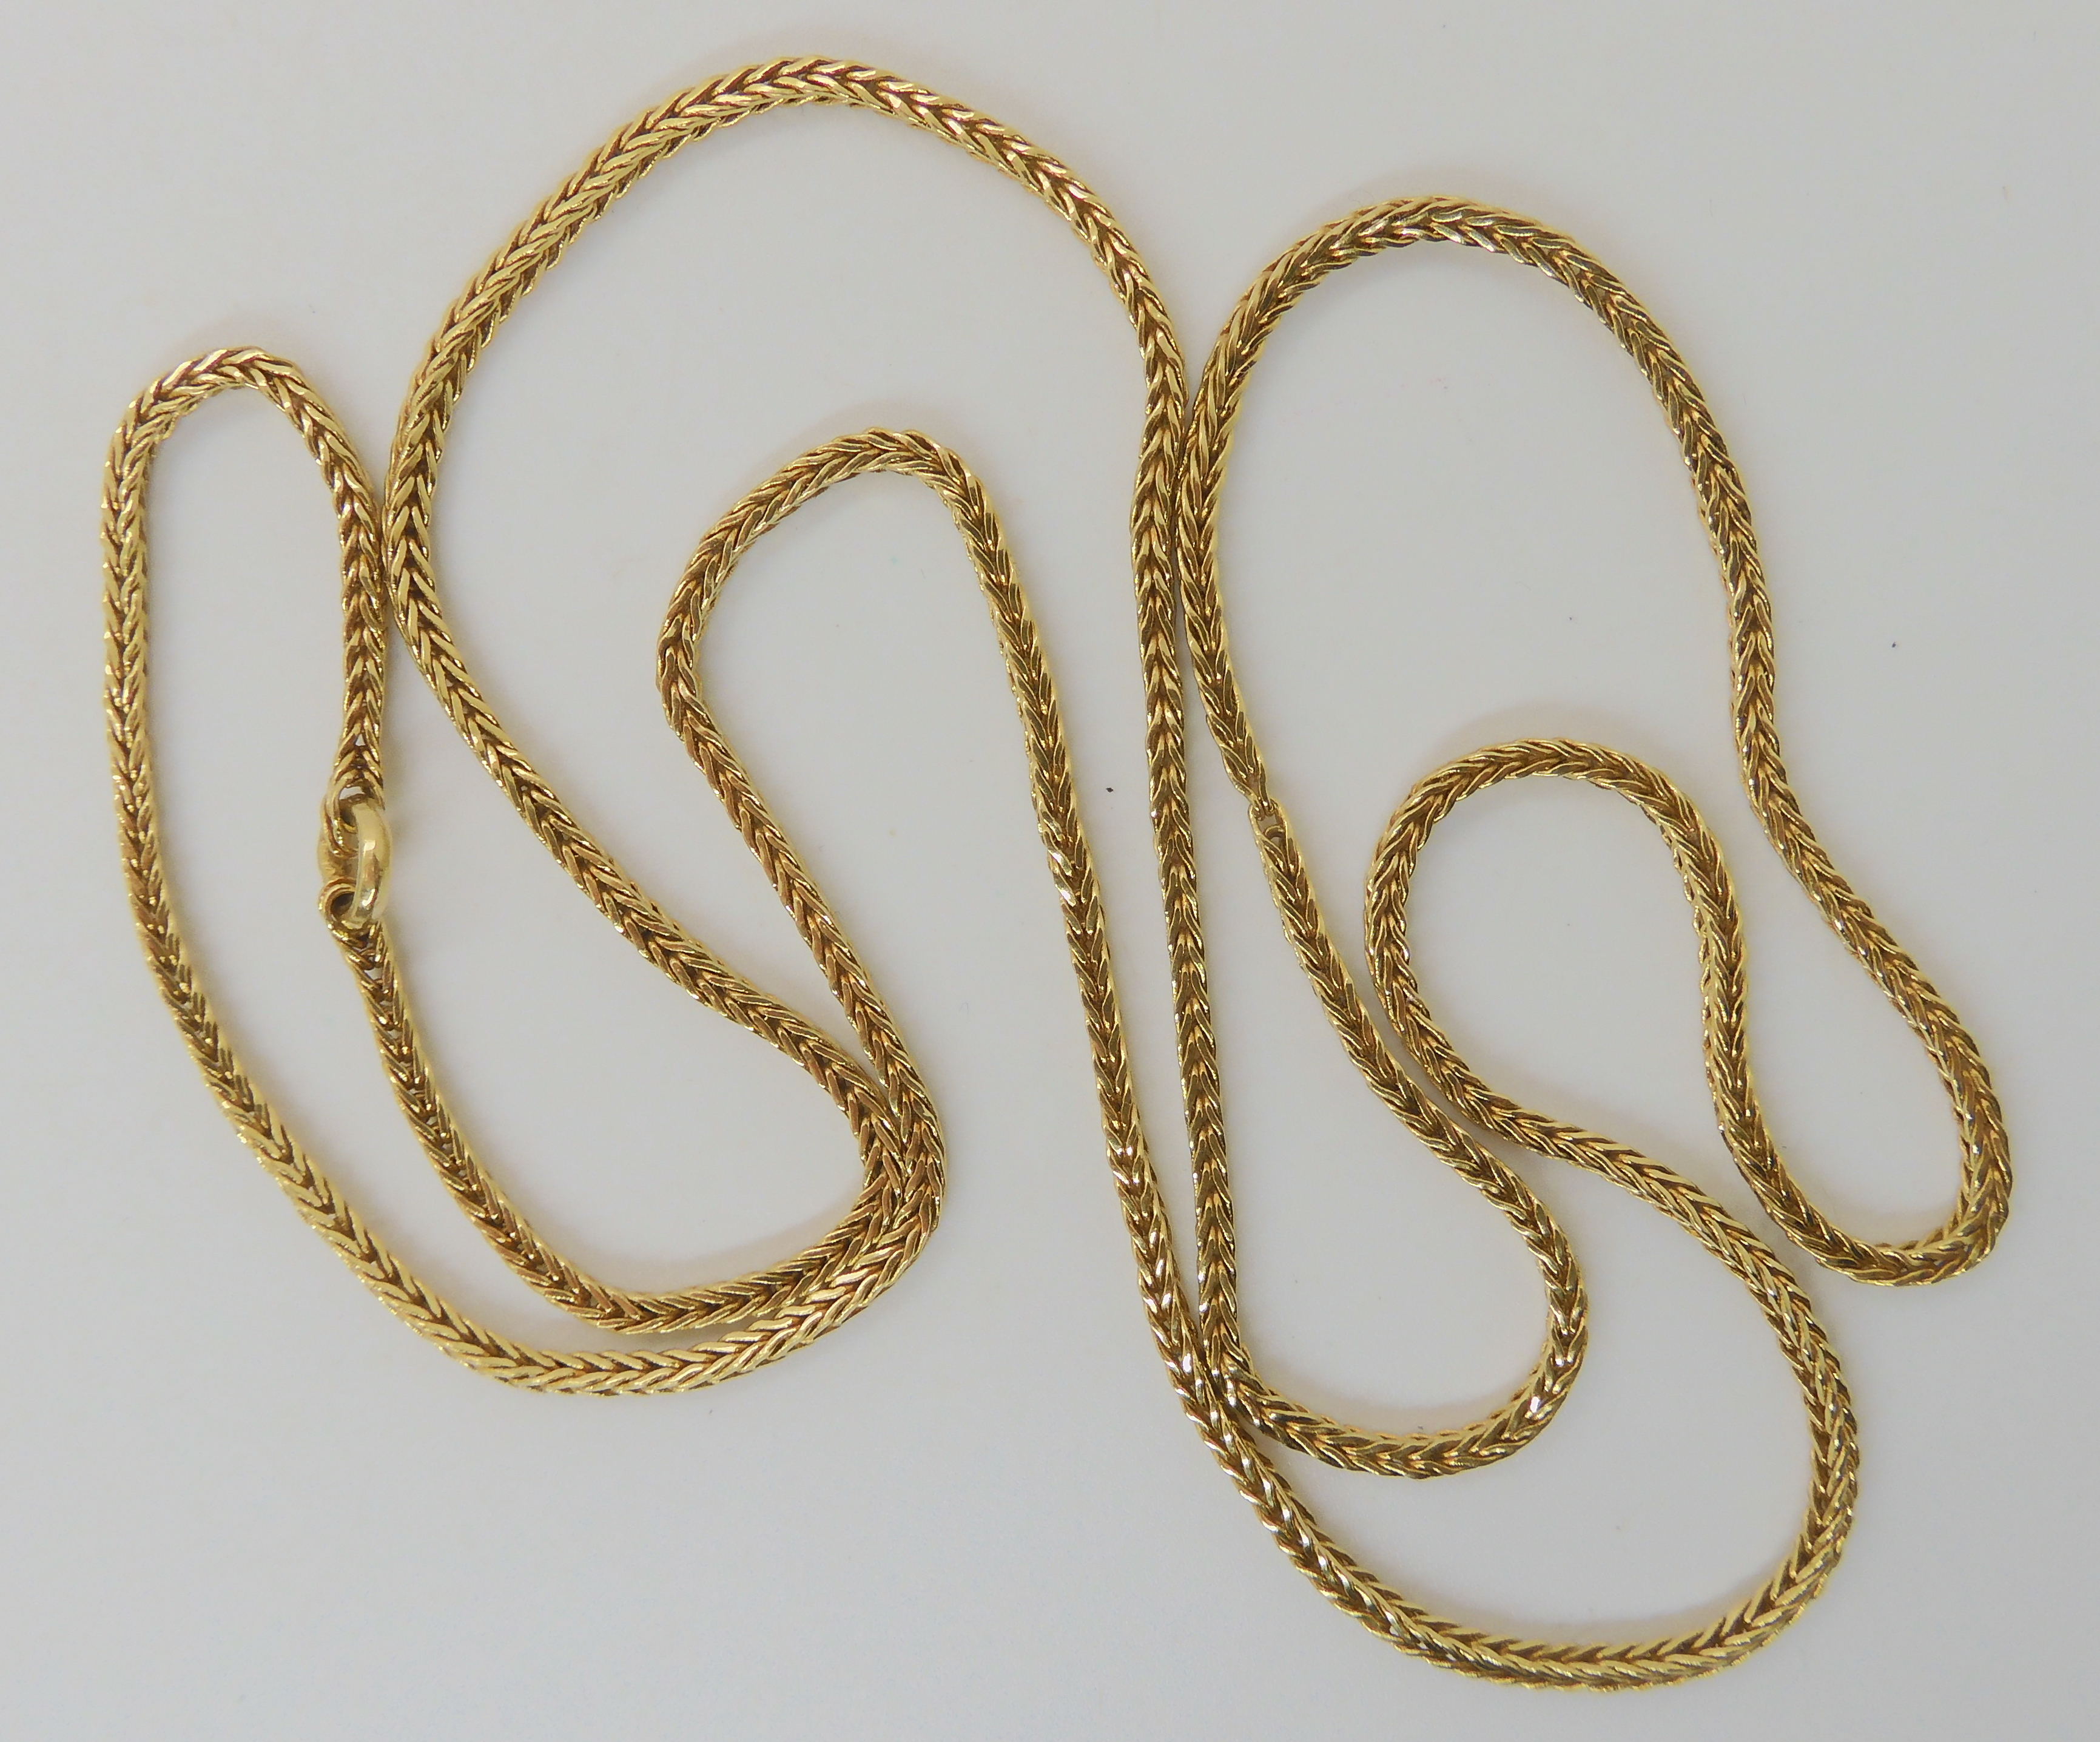 A BRIGHT YELLOW METAL HERRINGBONE CHAIN chain has no clasp, length approx 63cm, weight 18gms